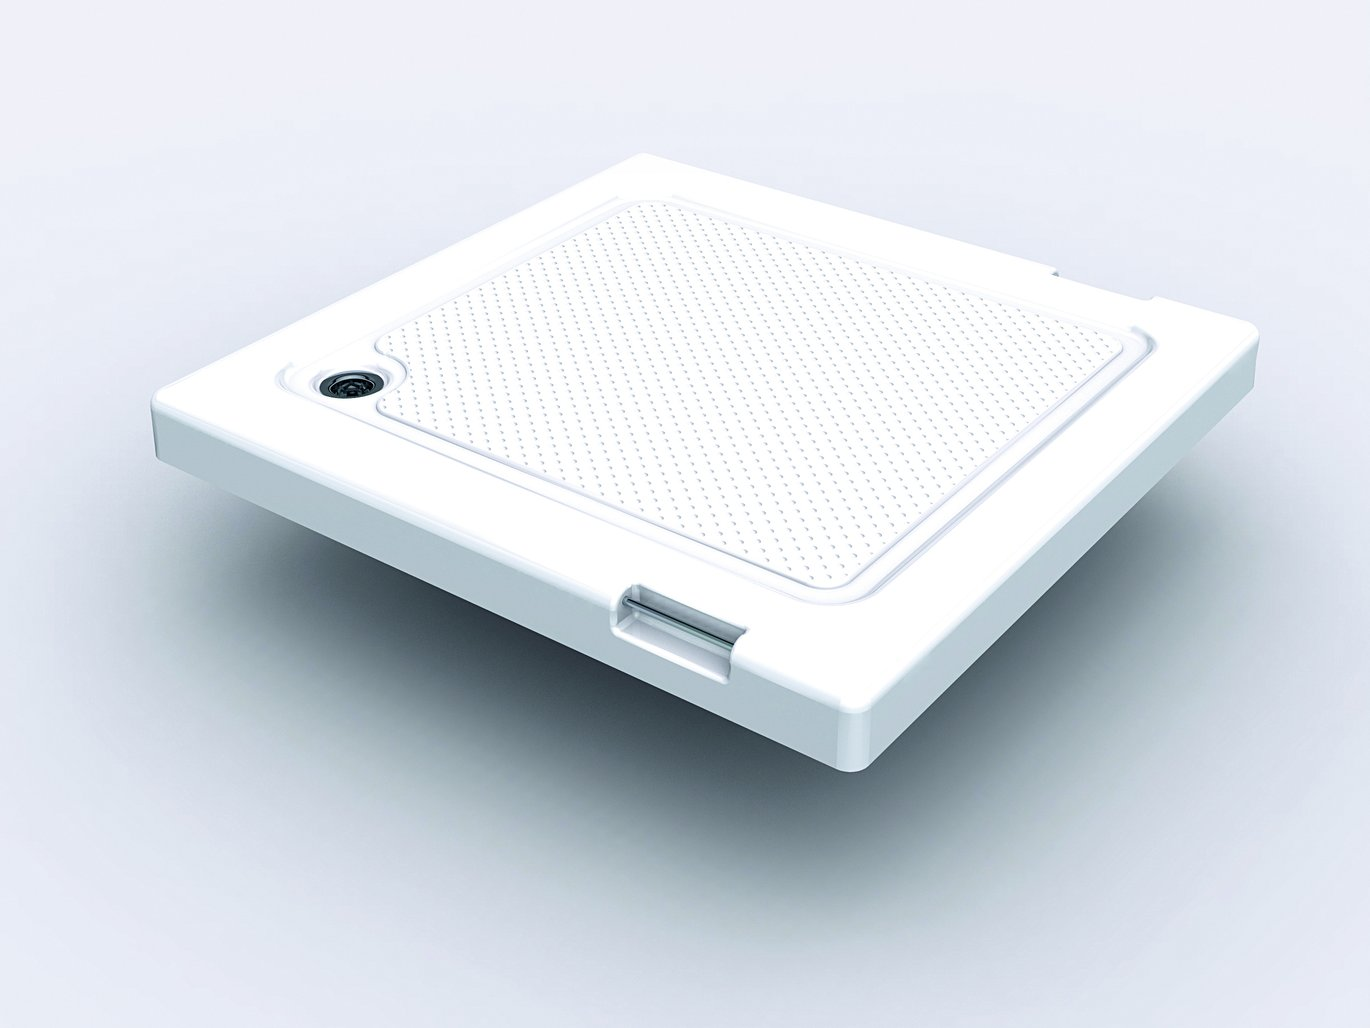 Lid as shower tray with non-slip coating